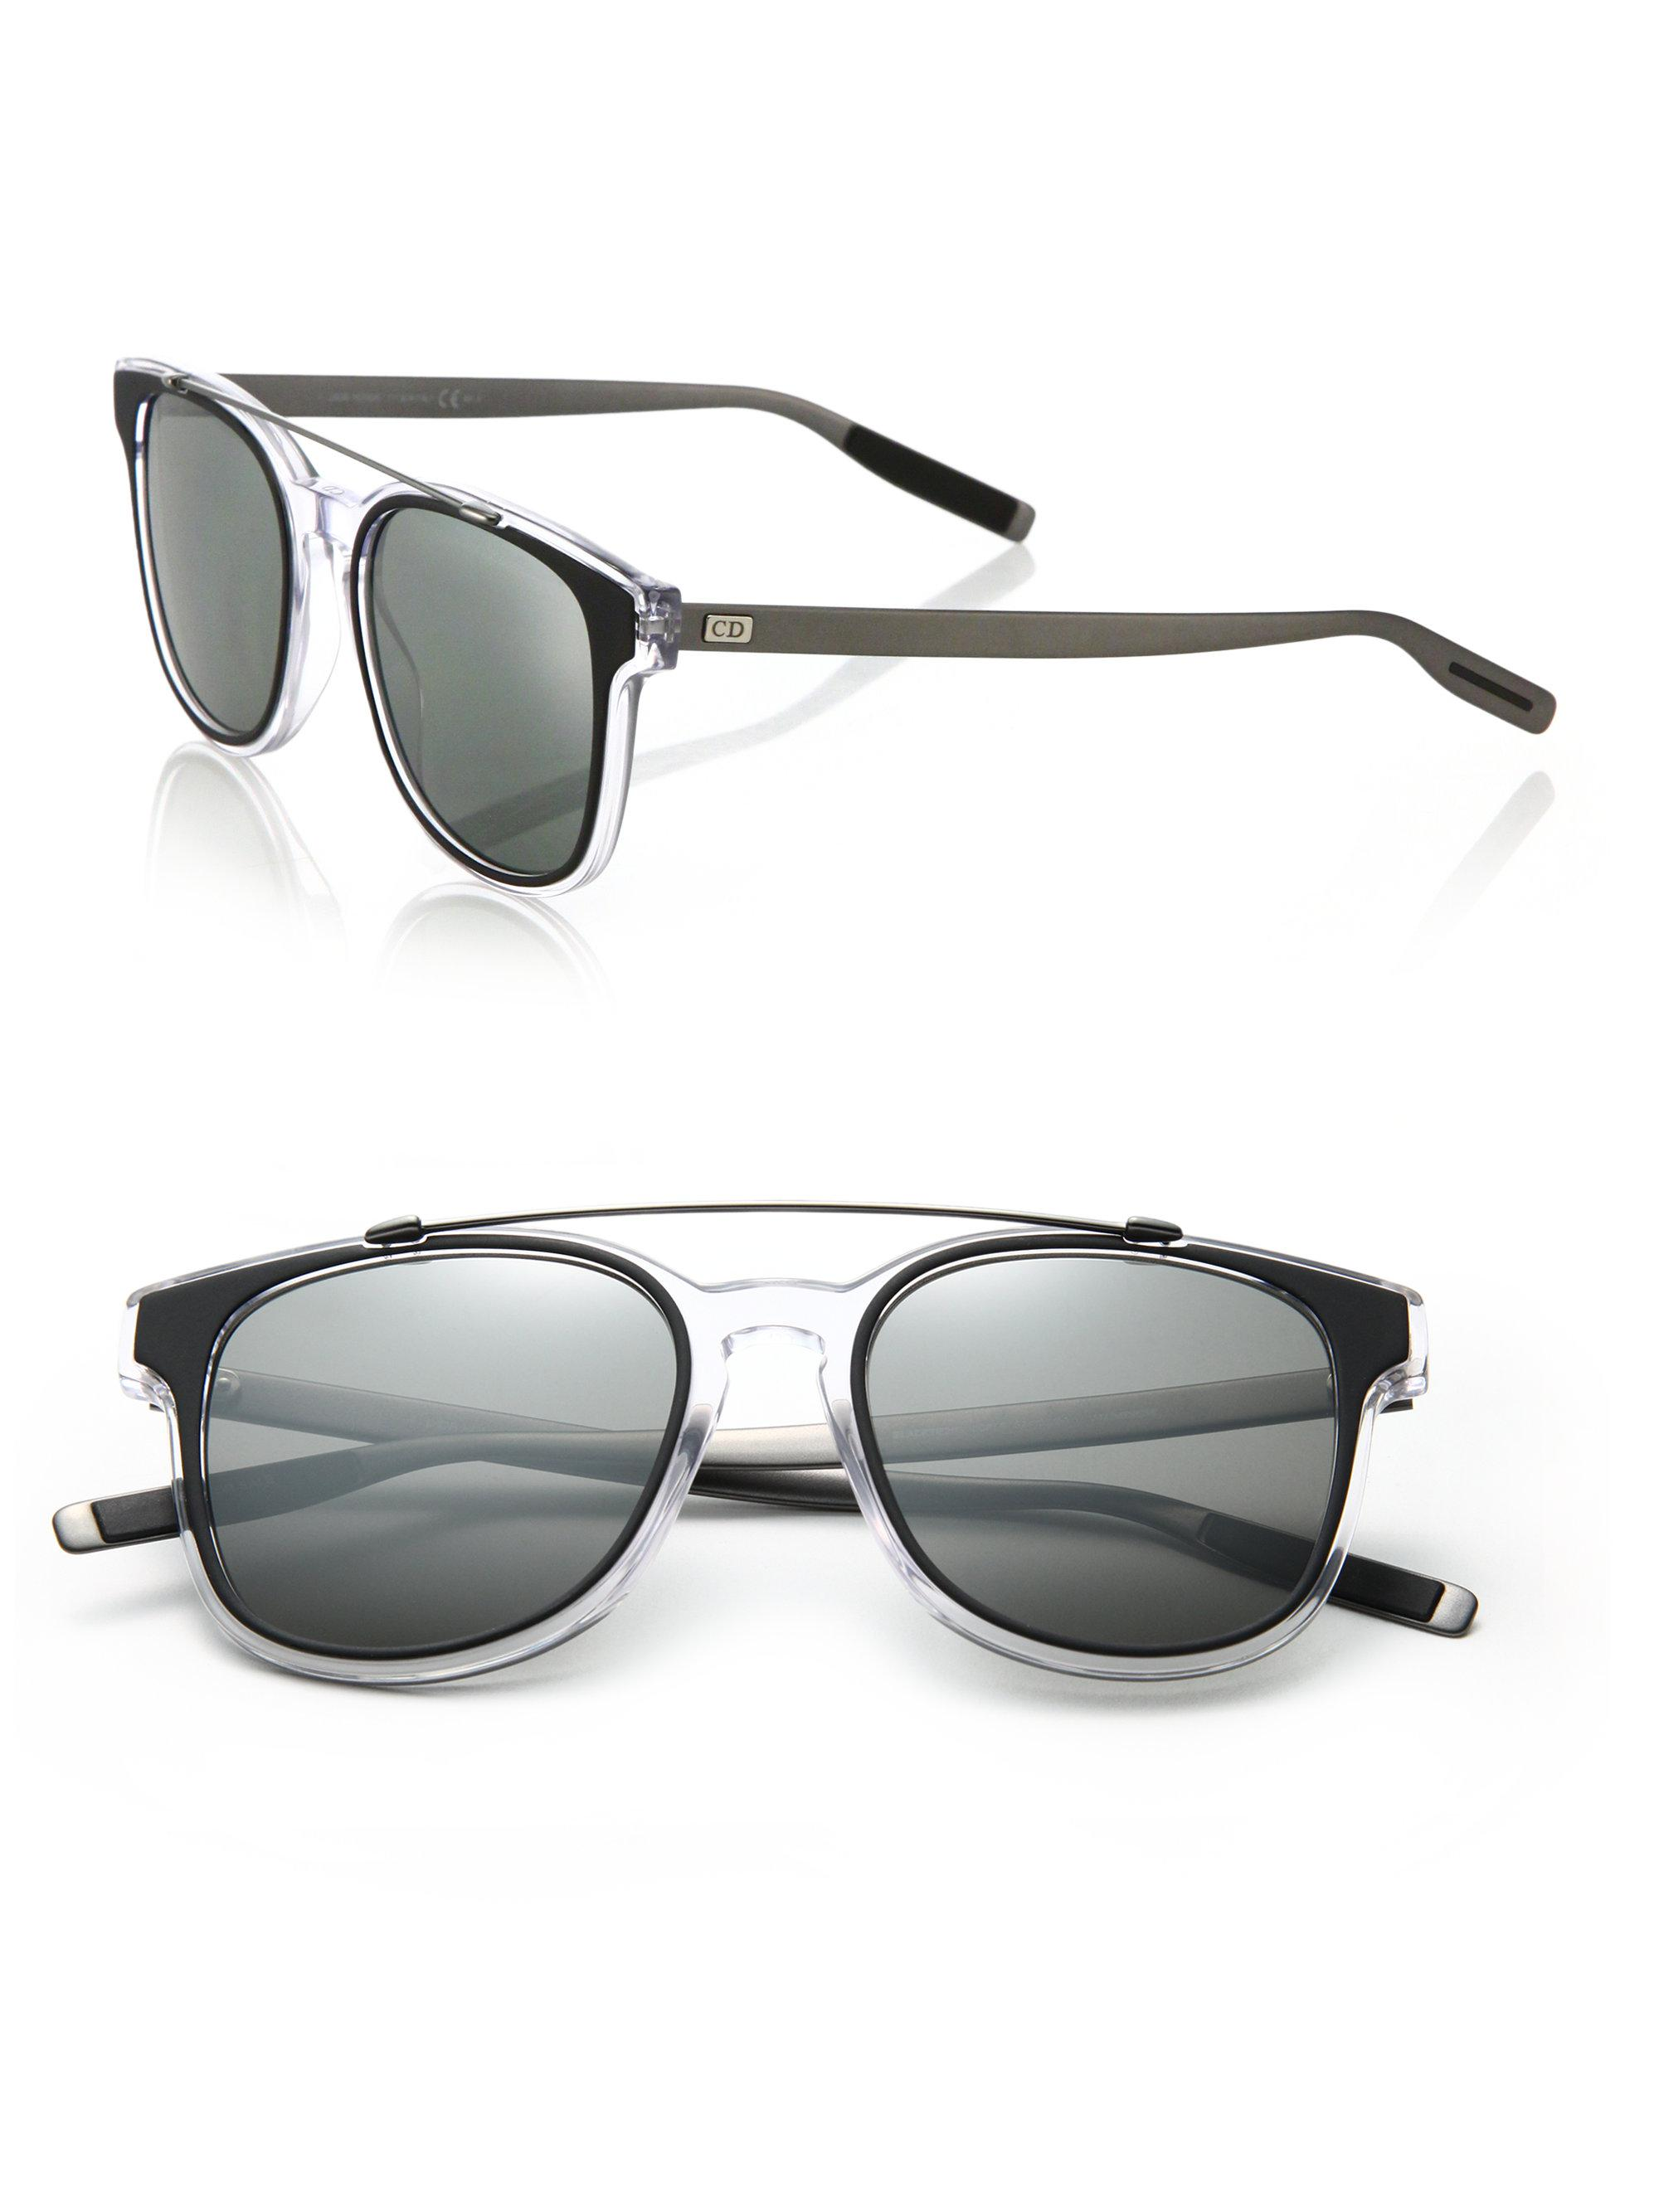 4a126f5a2a493 Lyst - Dior Homme Black Tie 211s 52mm Mirror Sunglasses in Black for Men